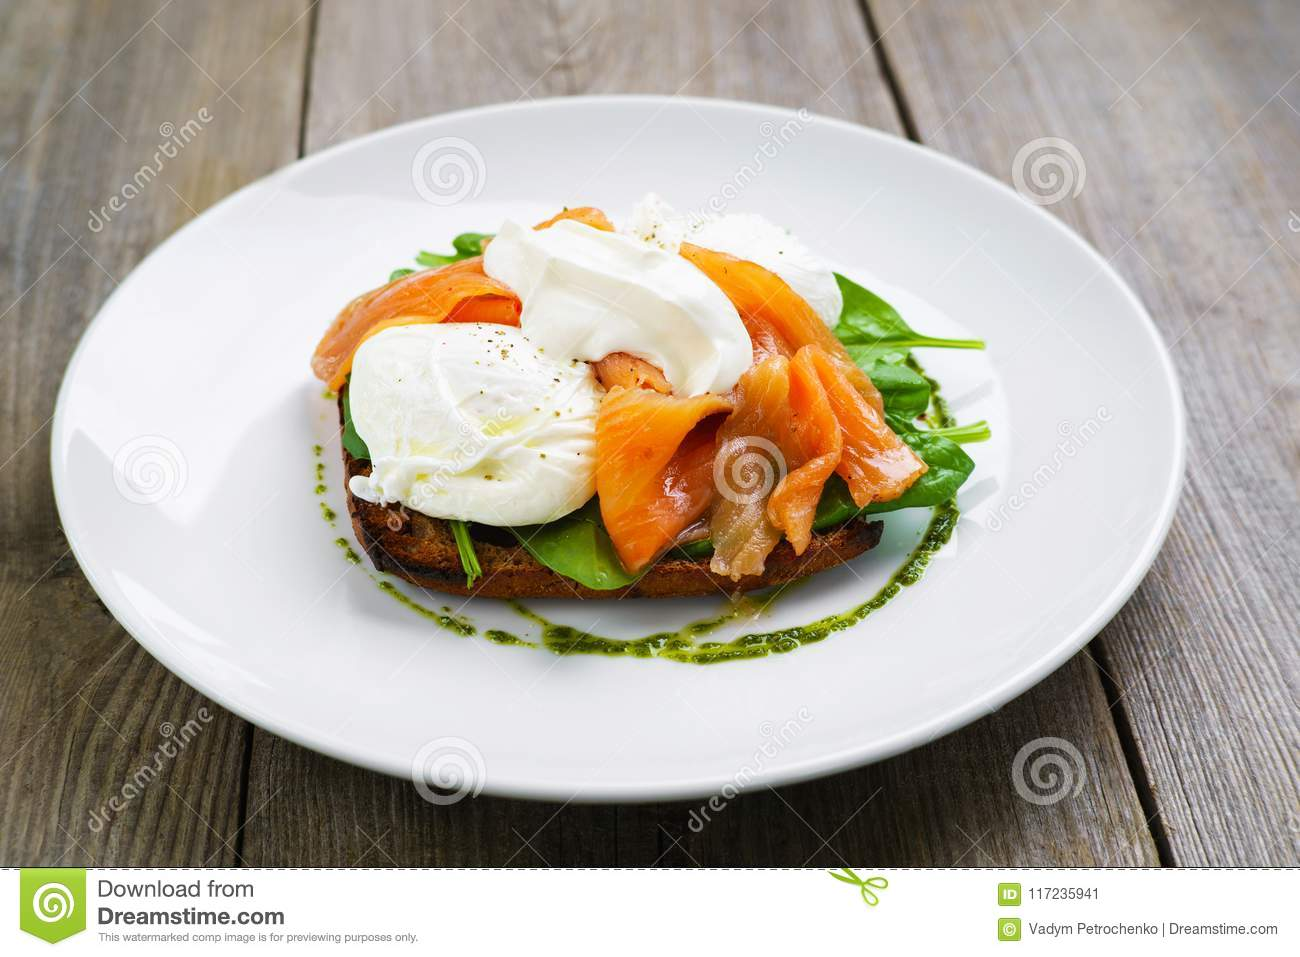 Protein Salmon and Eggs on Toast forecast